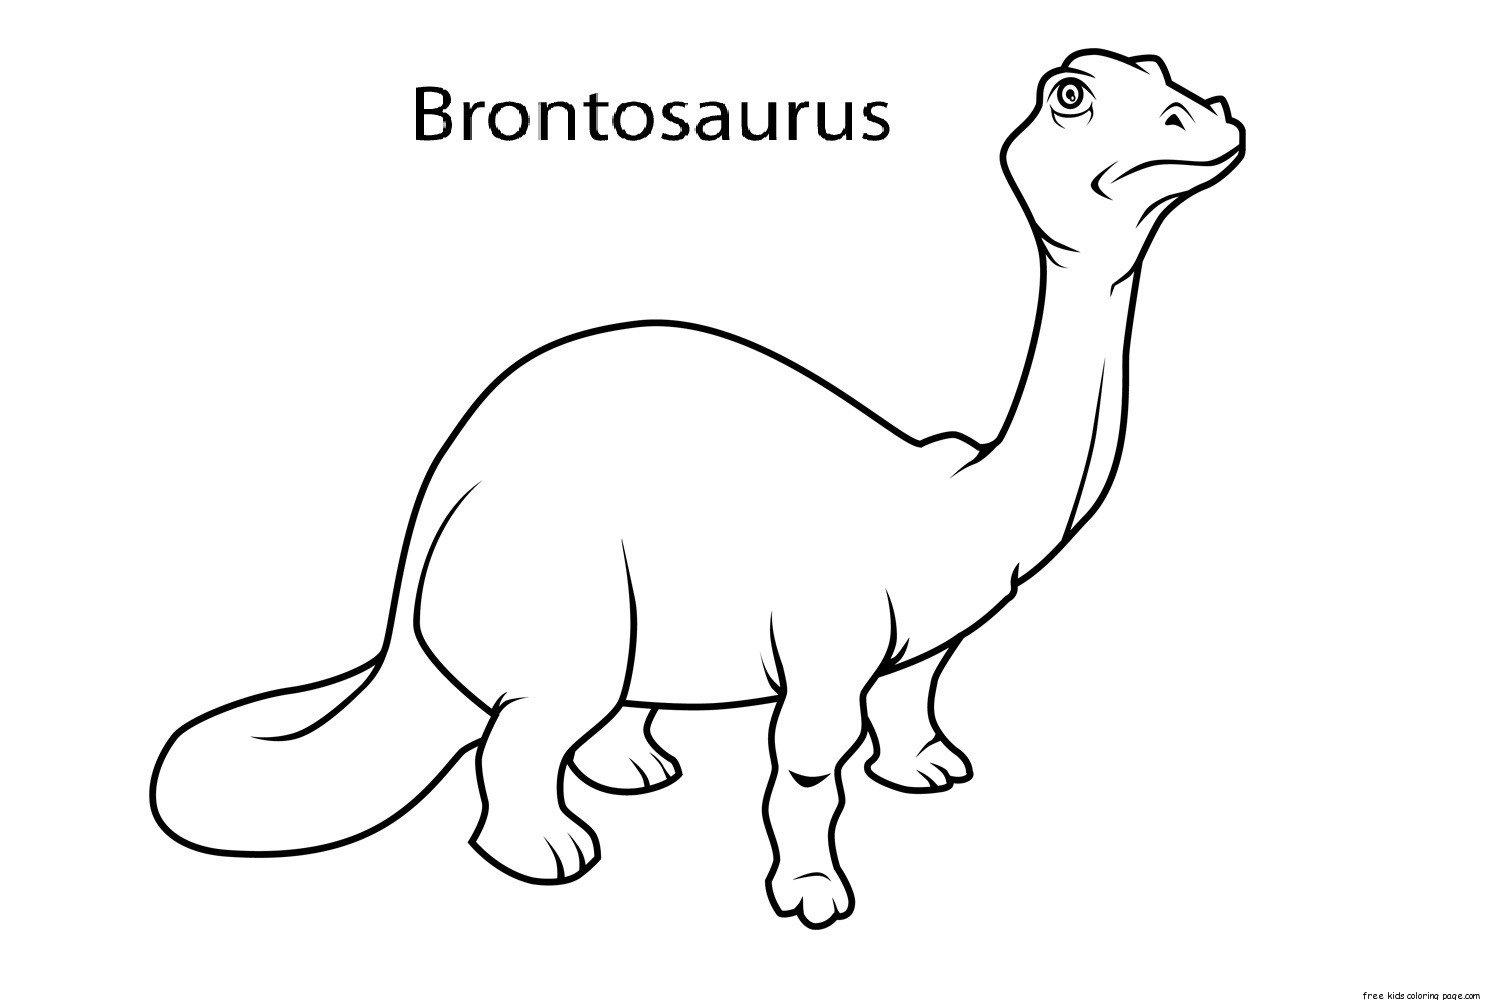 Printable-brontosaurus-dinosaur-coloring-pages